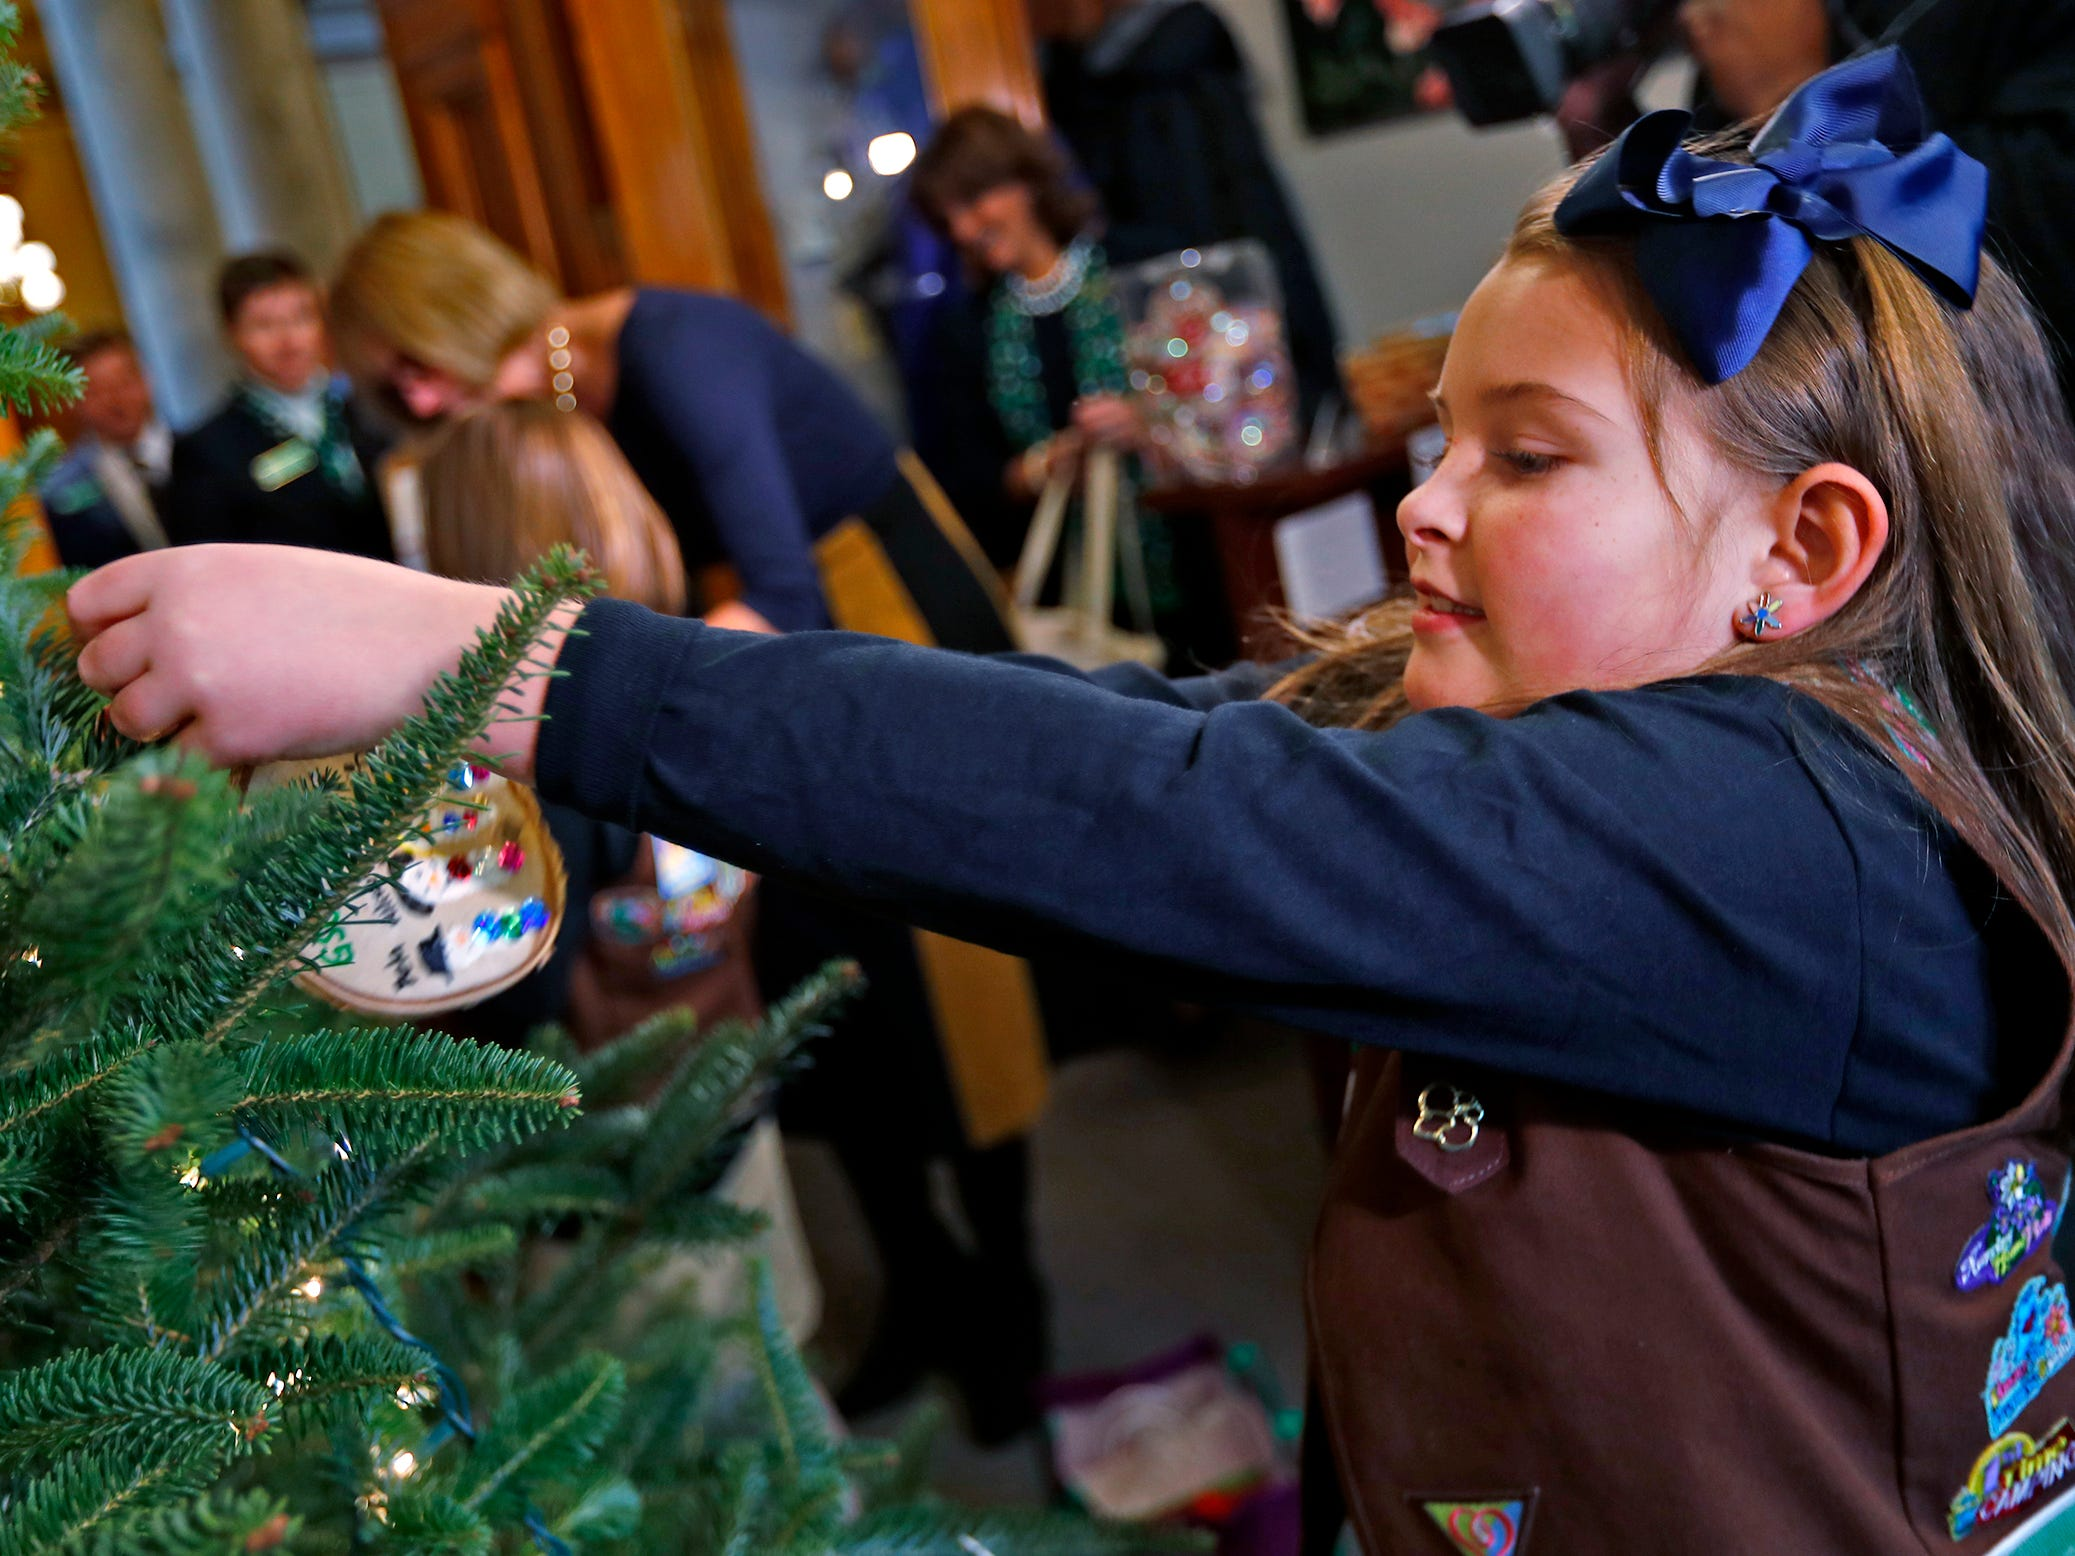 Katie Callahan reaches to hang an ornament, as she joins other Brownies and Lieutenant Governor Suzanne Crouch to decorate Crouch's Statehouse tree for the holidays, Wednesday, Dec. 5, 2018.  They used ornaments created by Girl Scouts from across Central Indiana for the tree.